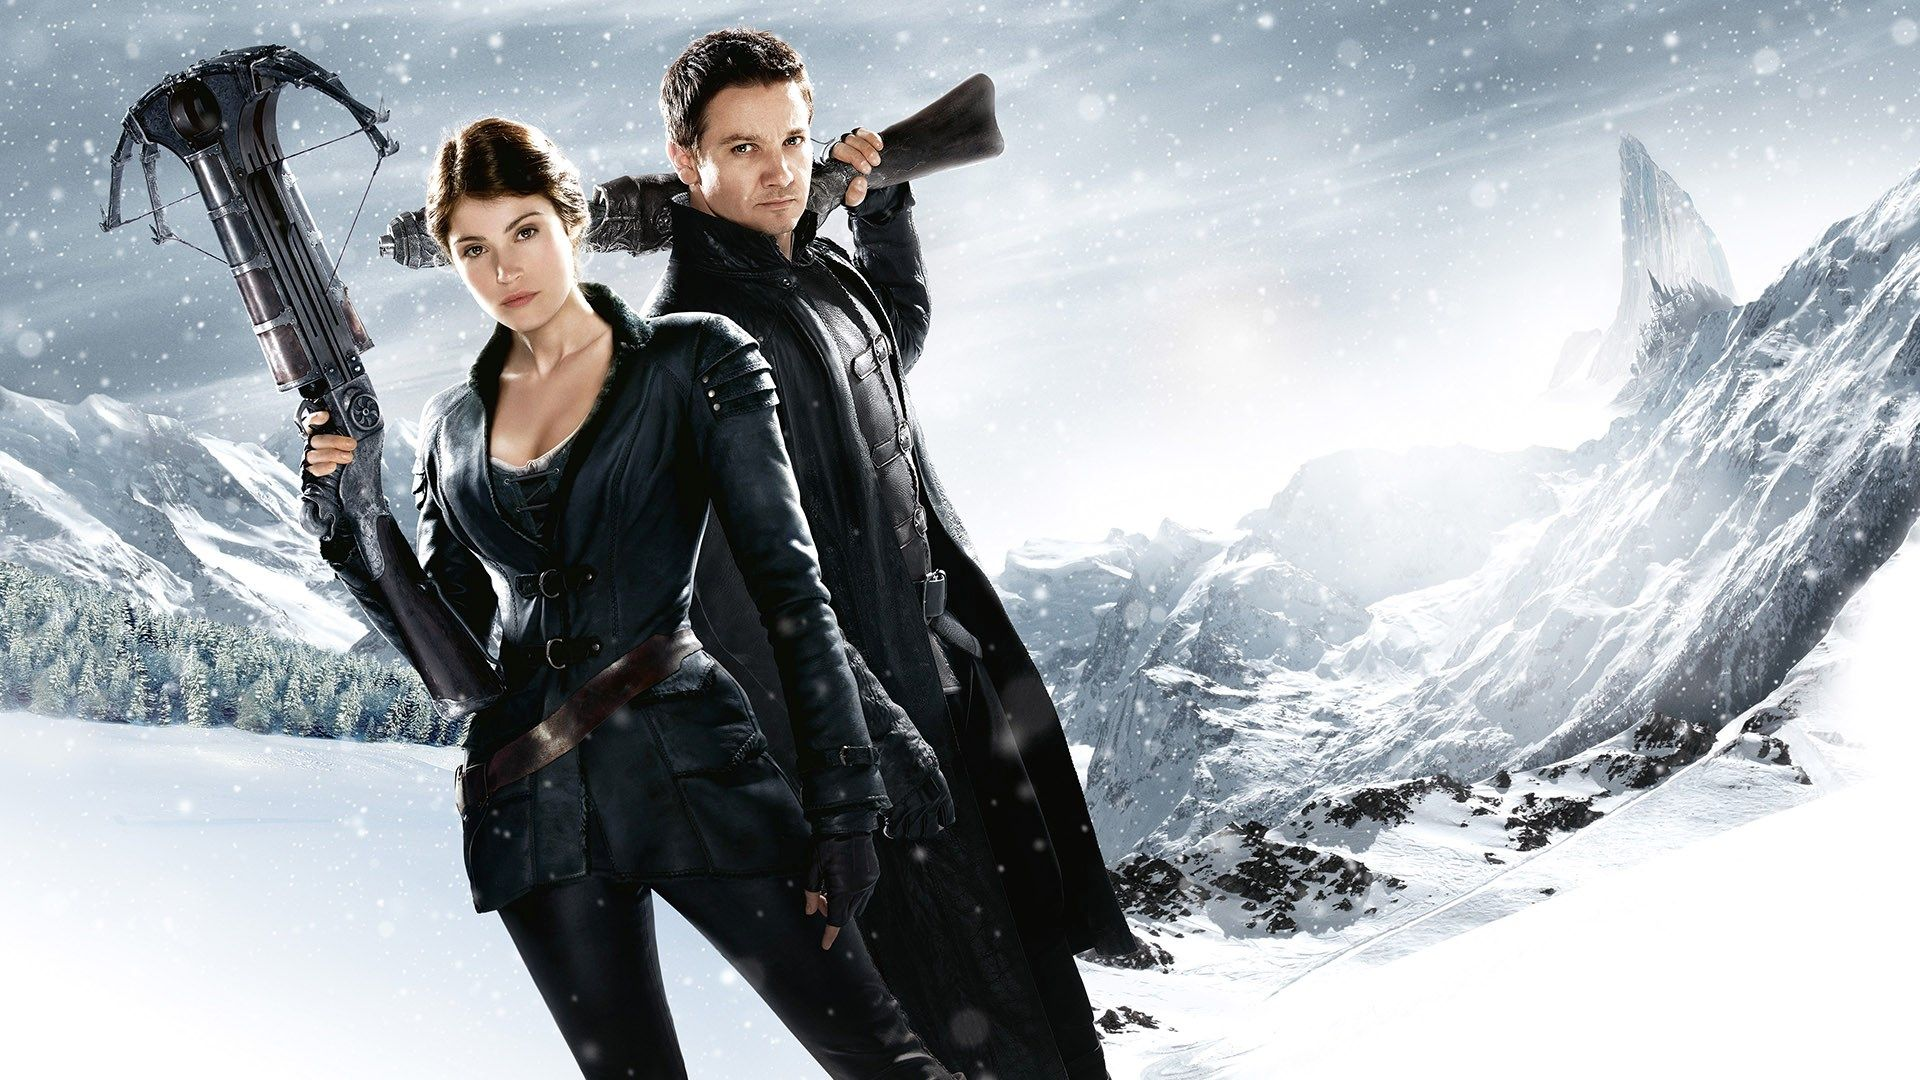 hd widescreen hansel and gretel witch hunters image - hansel and